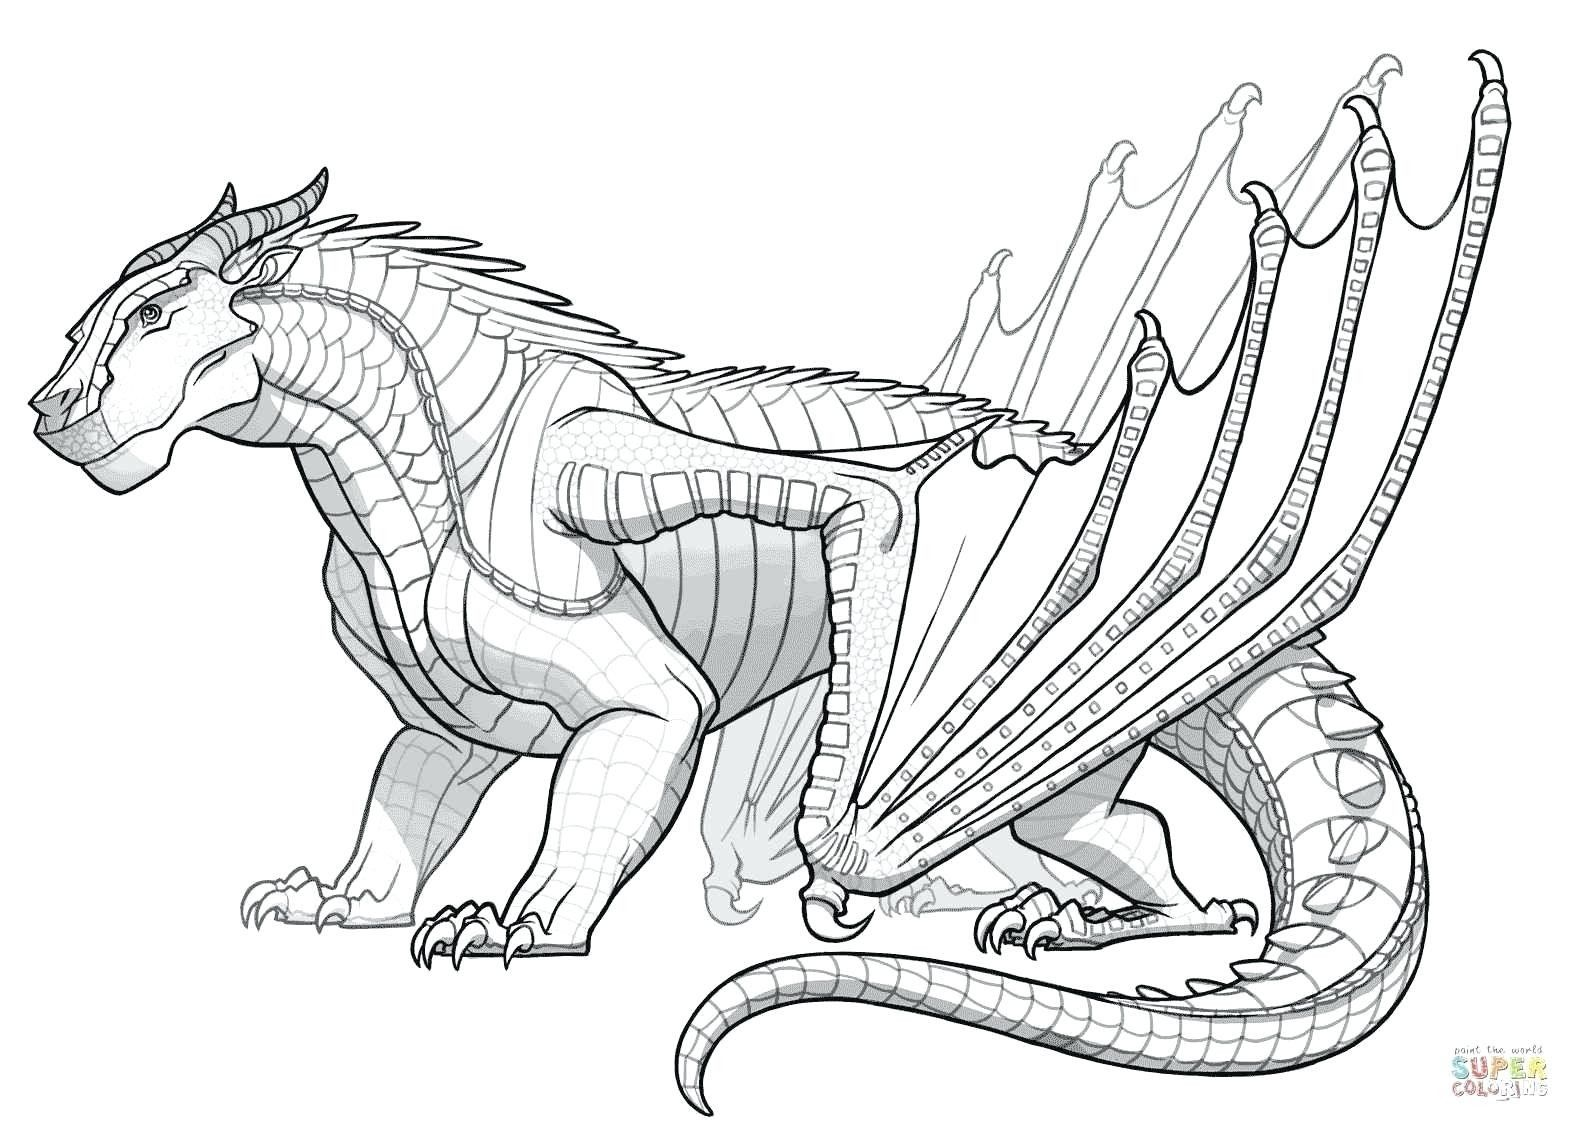 Baby Dragon Coloring Pages Luxury Dragon Eye Coloring Pages Highendpaper Zoo Animal Coloring Pages Pokemon Coloring Pages Dragon Coloring Page